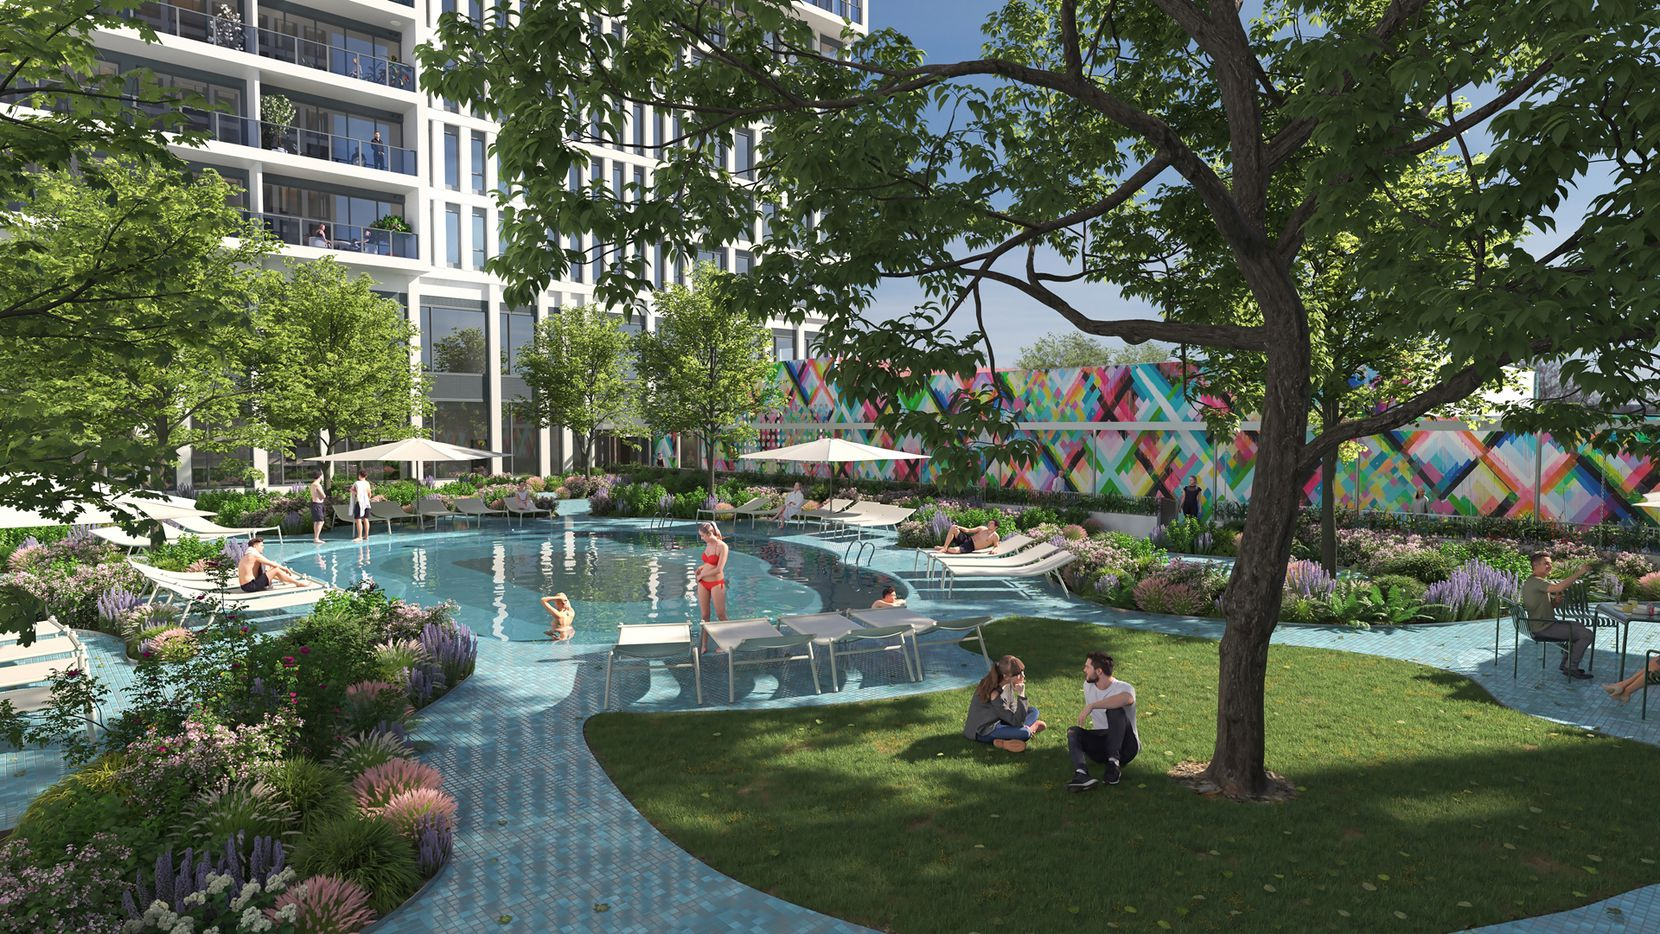 The apartment tower will include a landscaped pool area.